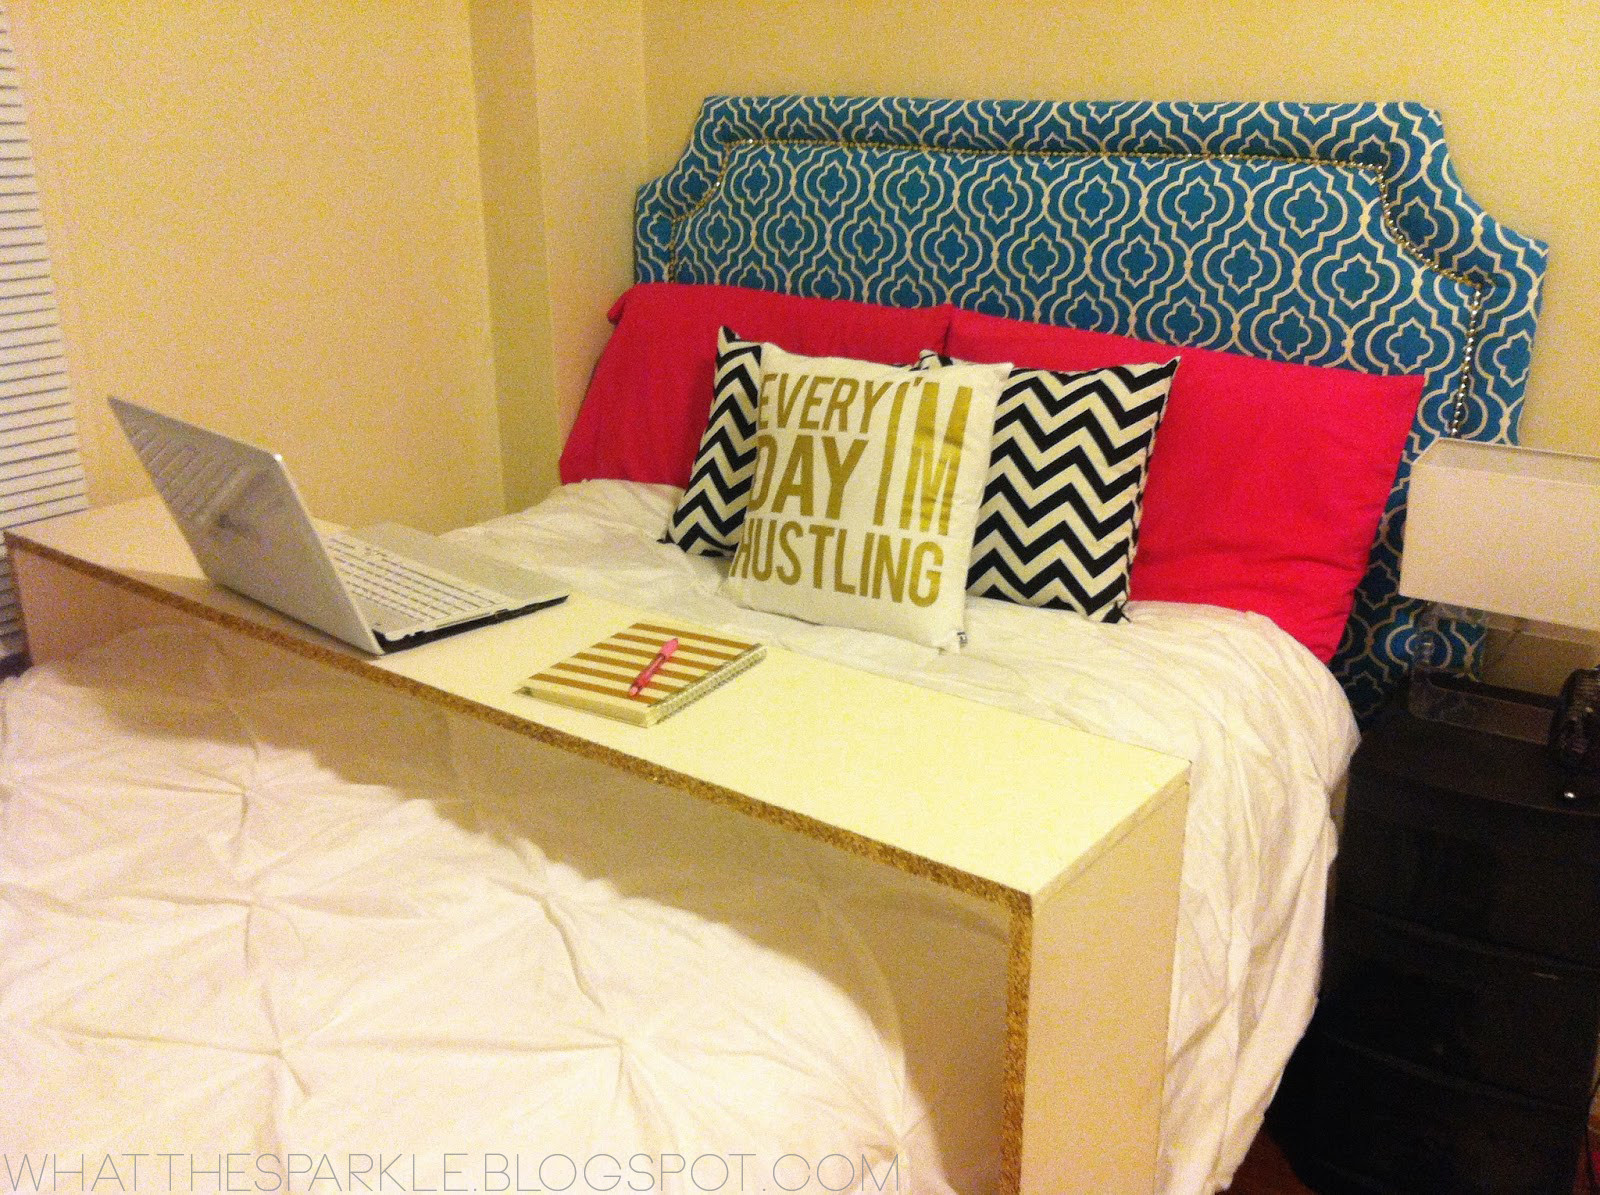 Best ideas about DIY Bed Table . Save or Pin Kelly Moran Now.